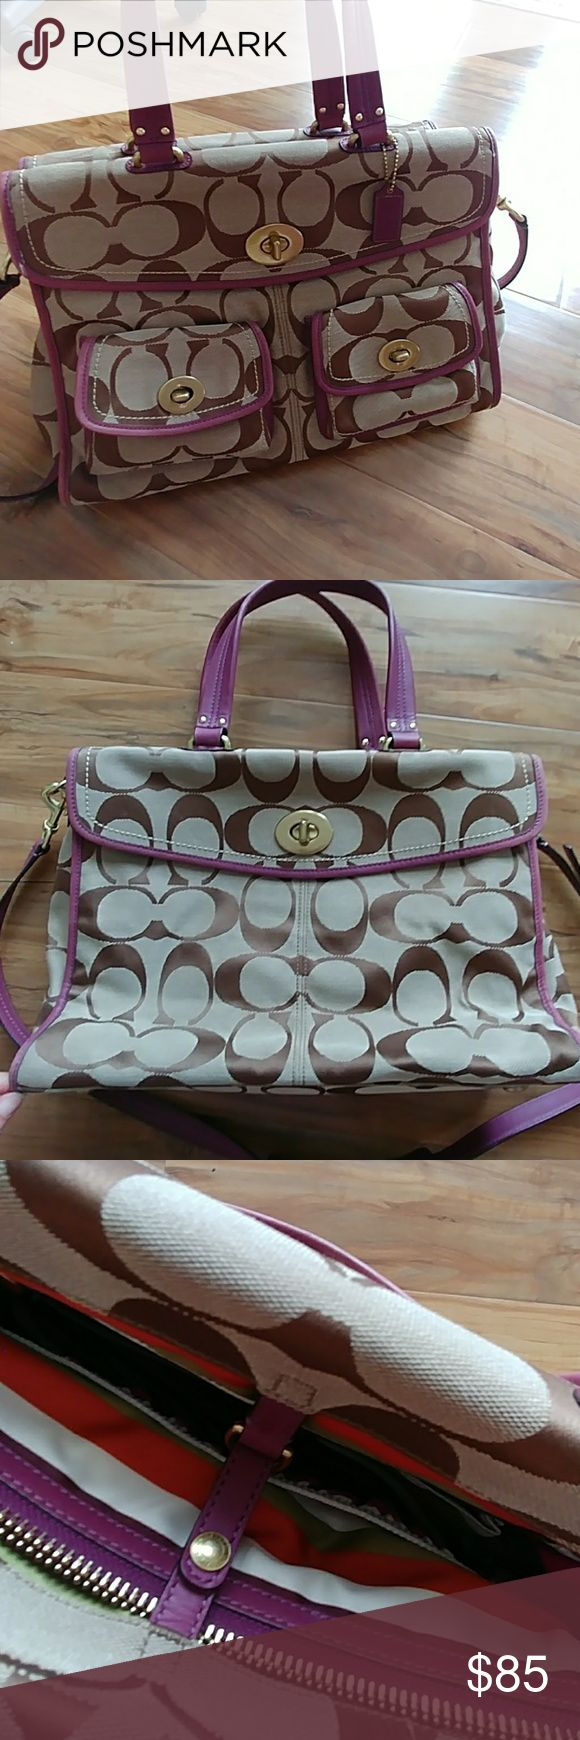 """Coach briefcase Good conditions, the purple color at the bottom and side little little bit faded.  14""""x10""""x4"""" Coach Bags Satchels"""